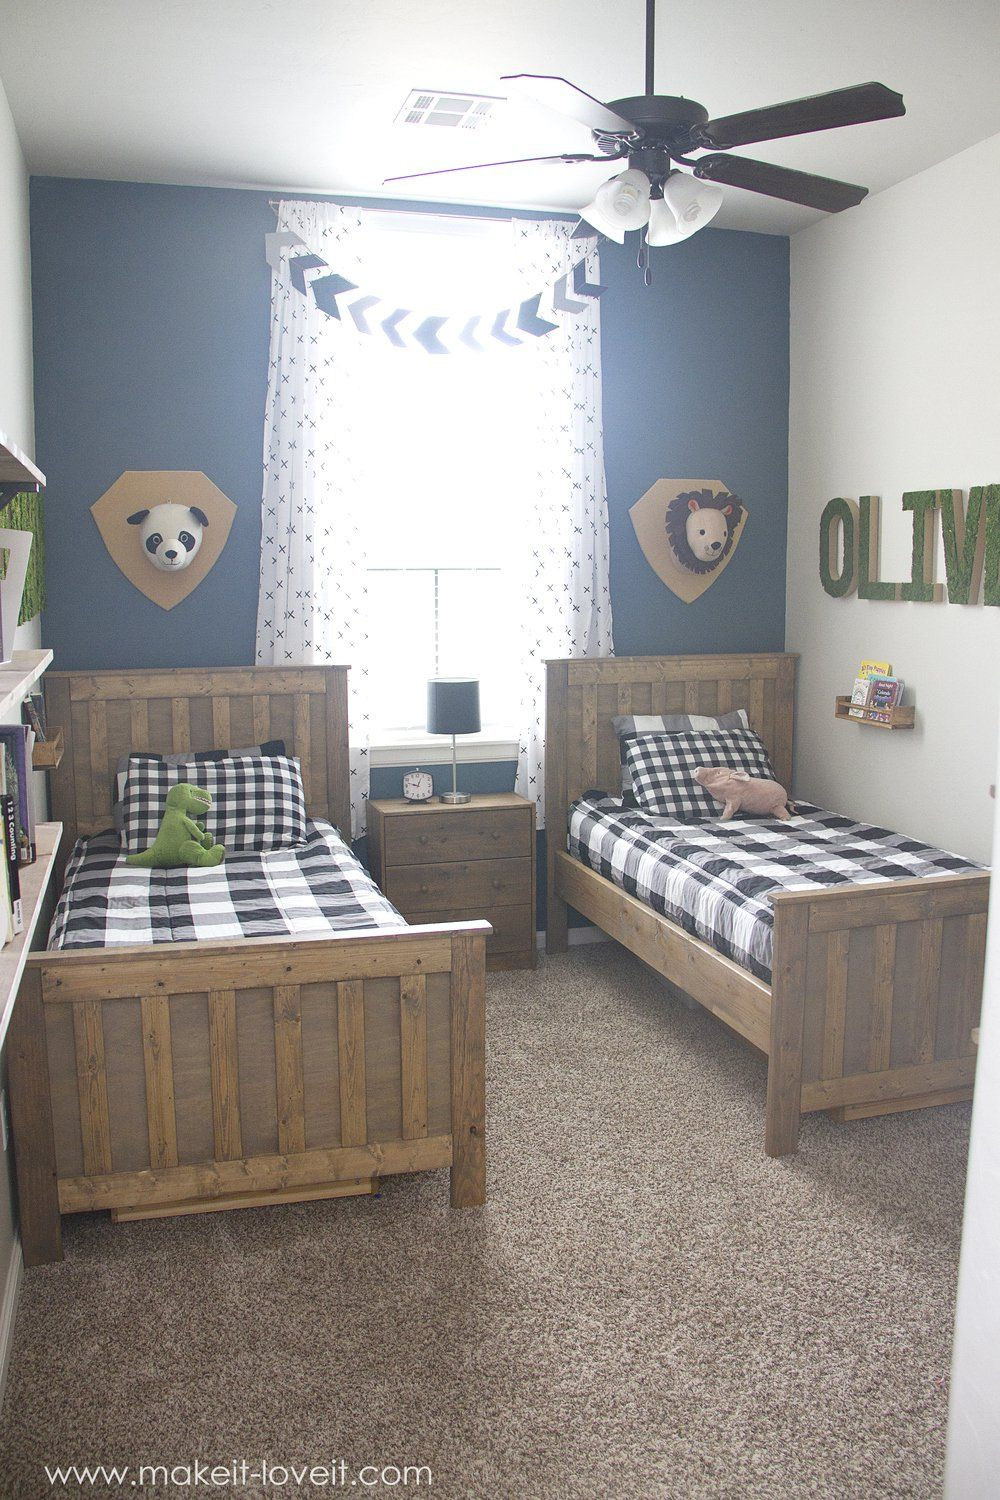 Ideas For A Shared Boys Bedroom Yay All Done Via Www Makeit Loveit